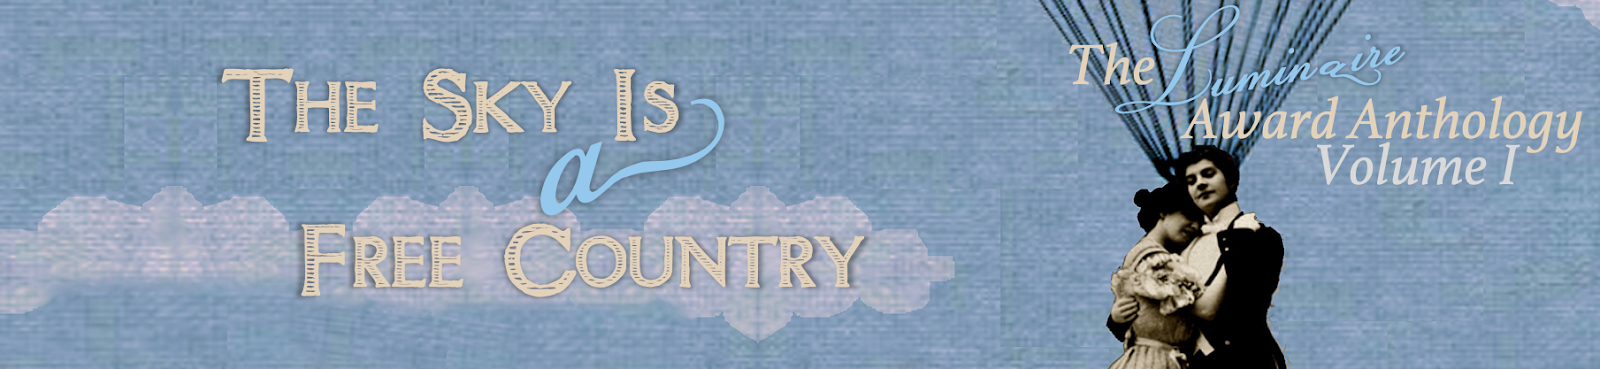 The Sky Is a Free Country header banner